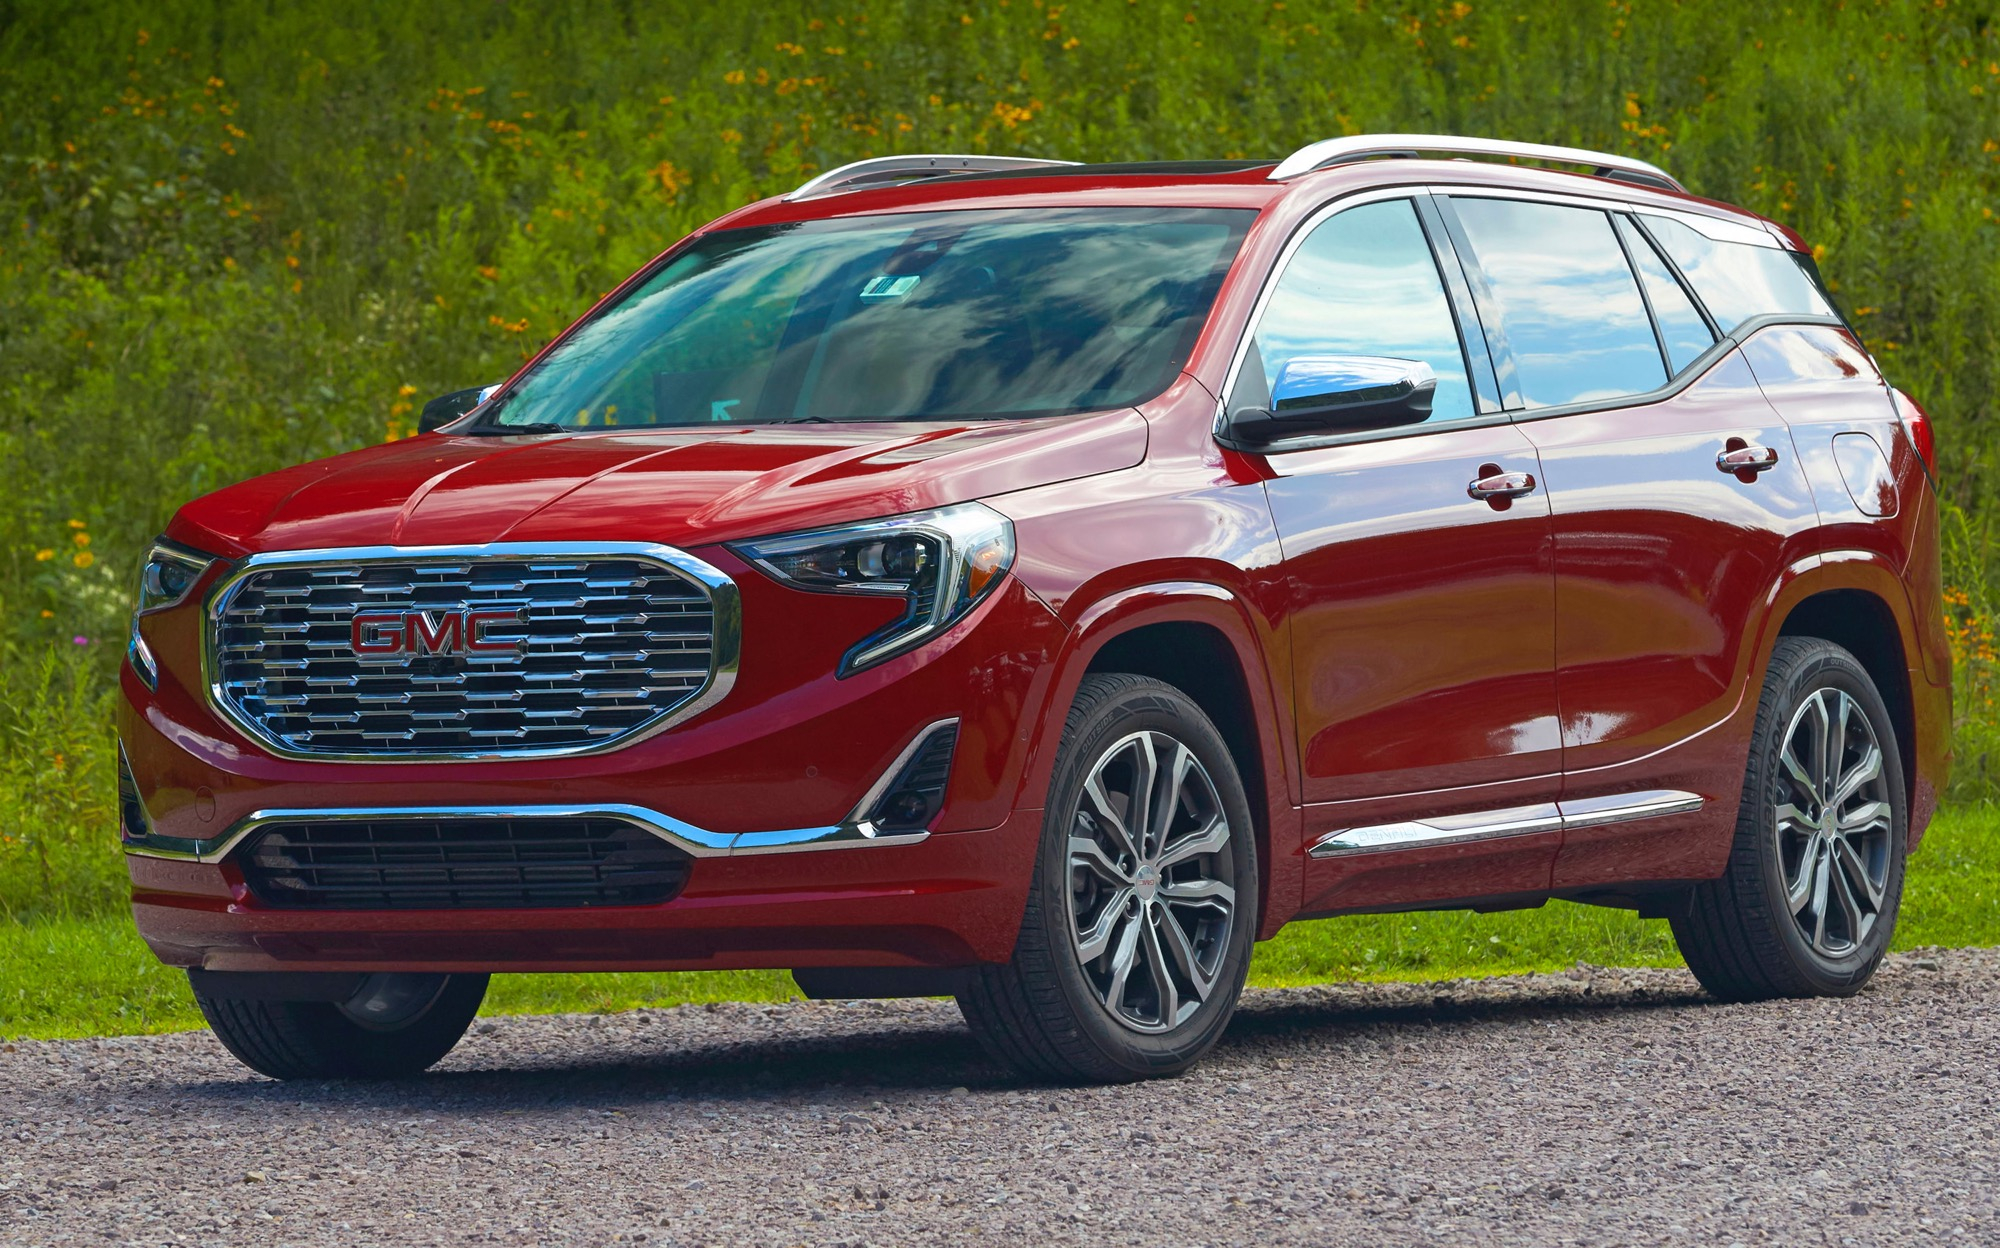 2021 Gmc Terrain Exterior Colors, Safety Rating, Engine ...